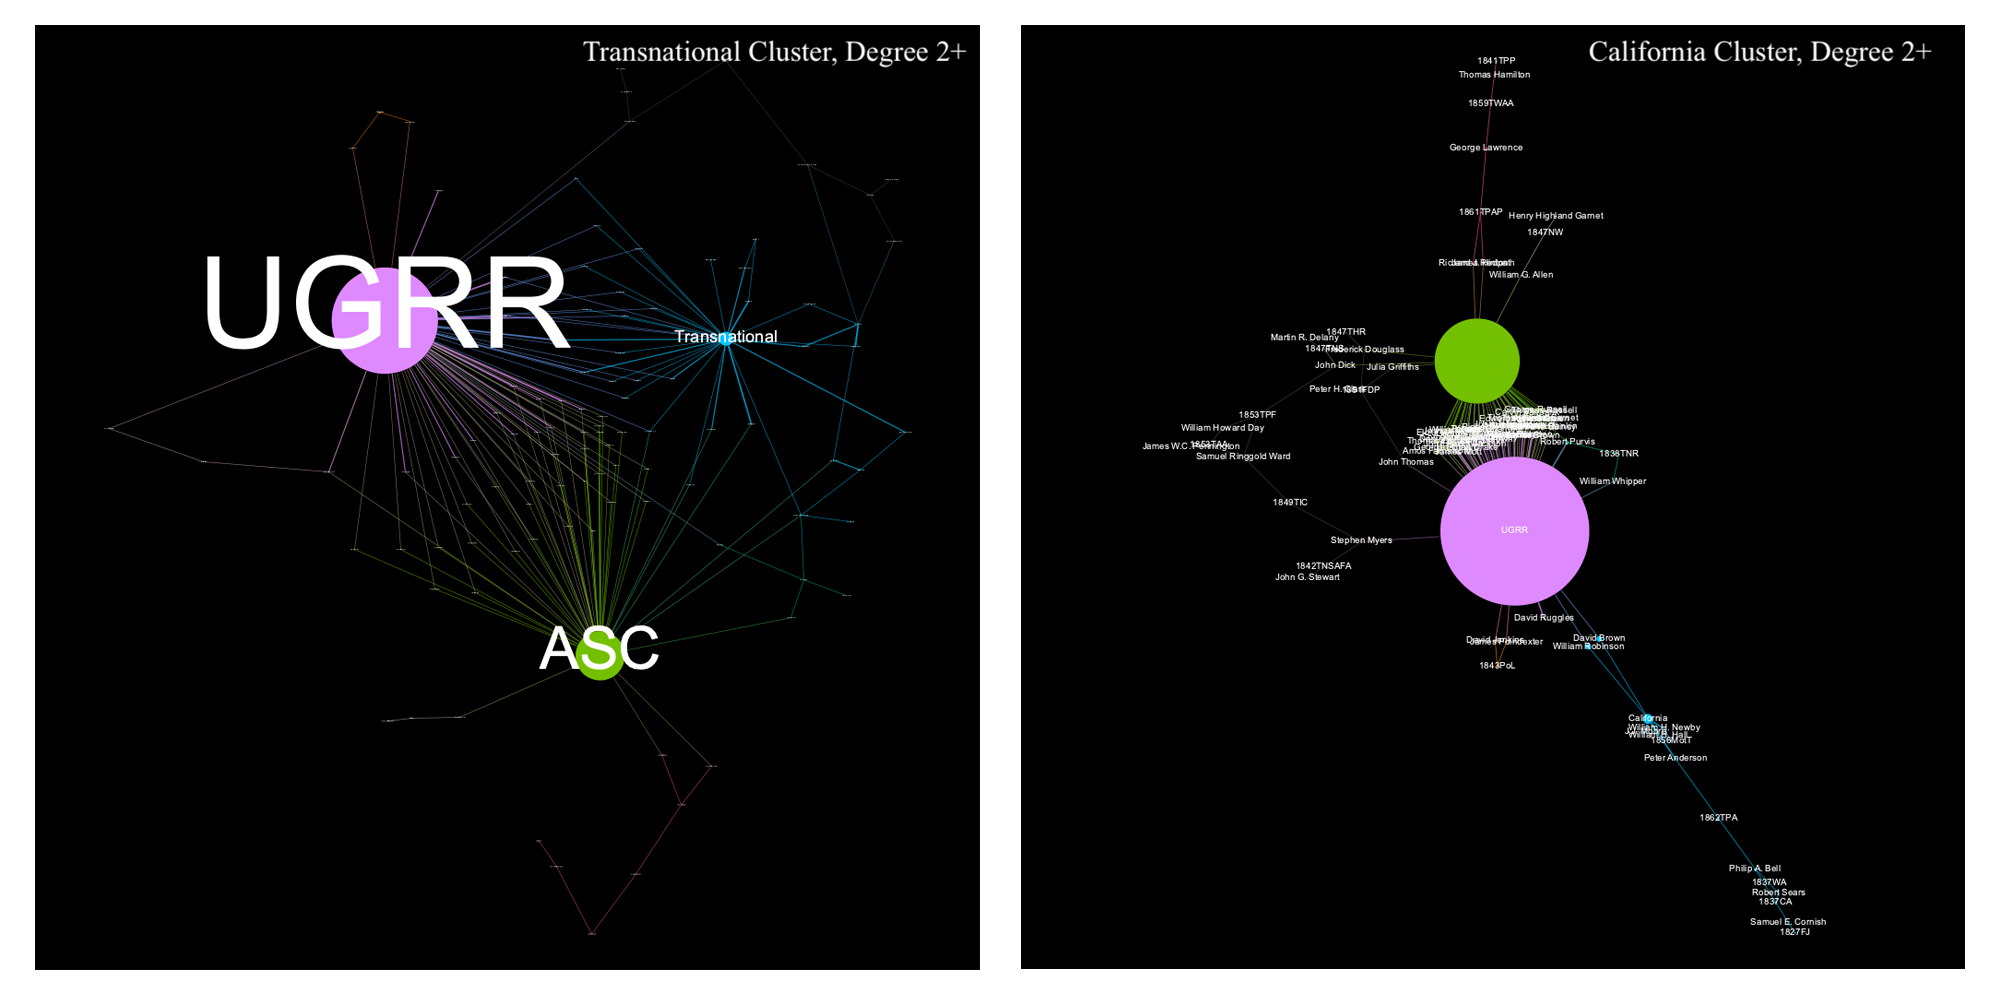 Two newtwork graphs of the transnational and California culsters, filtered to show entities with 2+ links.